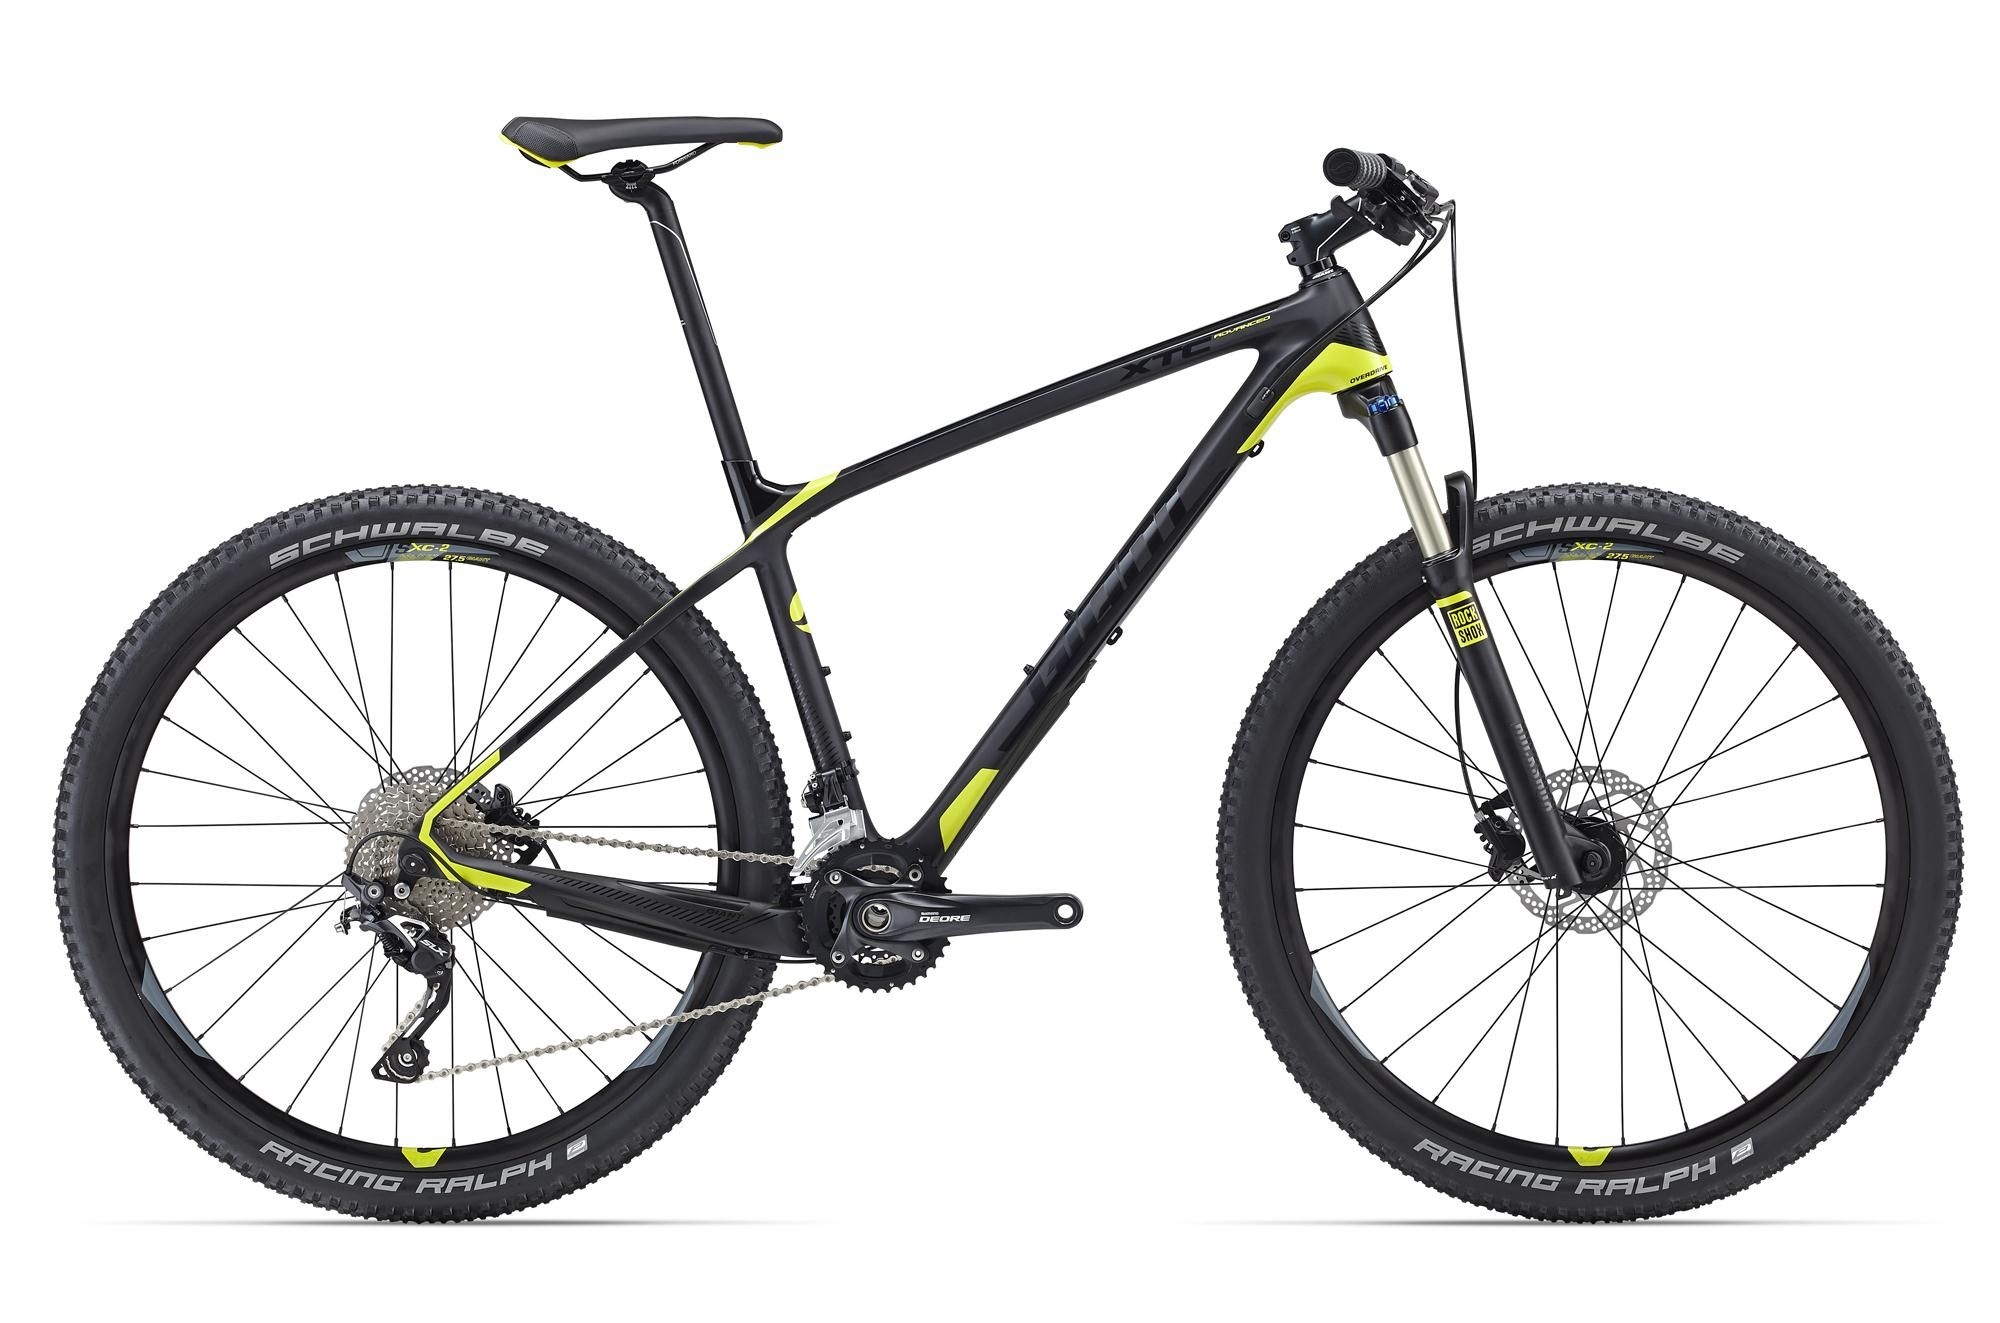 Велосипед Giant XtC Advanced 27.5 3 2016 велосипед giant trinity advanced pro 0 2016